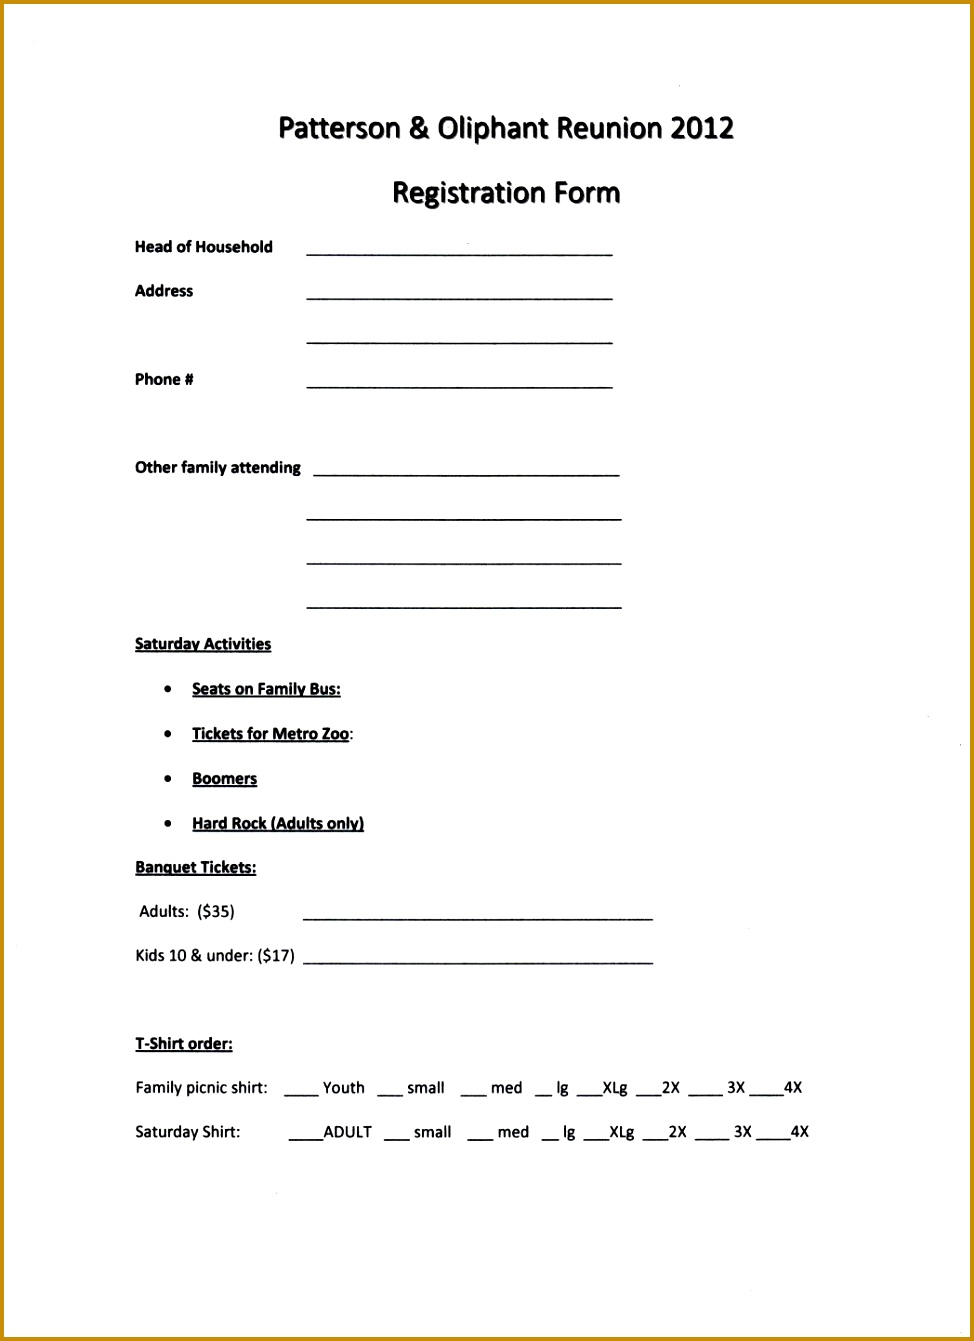 Event Registration Form Template Word Free Fundraising Flyer Templates  Printable Example Family Reunion Program Patterson 1341974  Event Registration Form Template Word